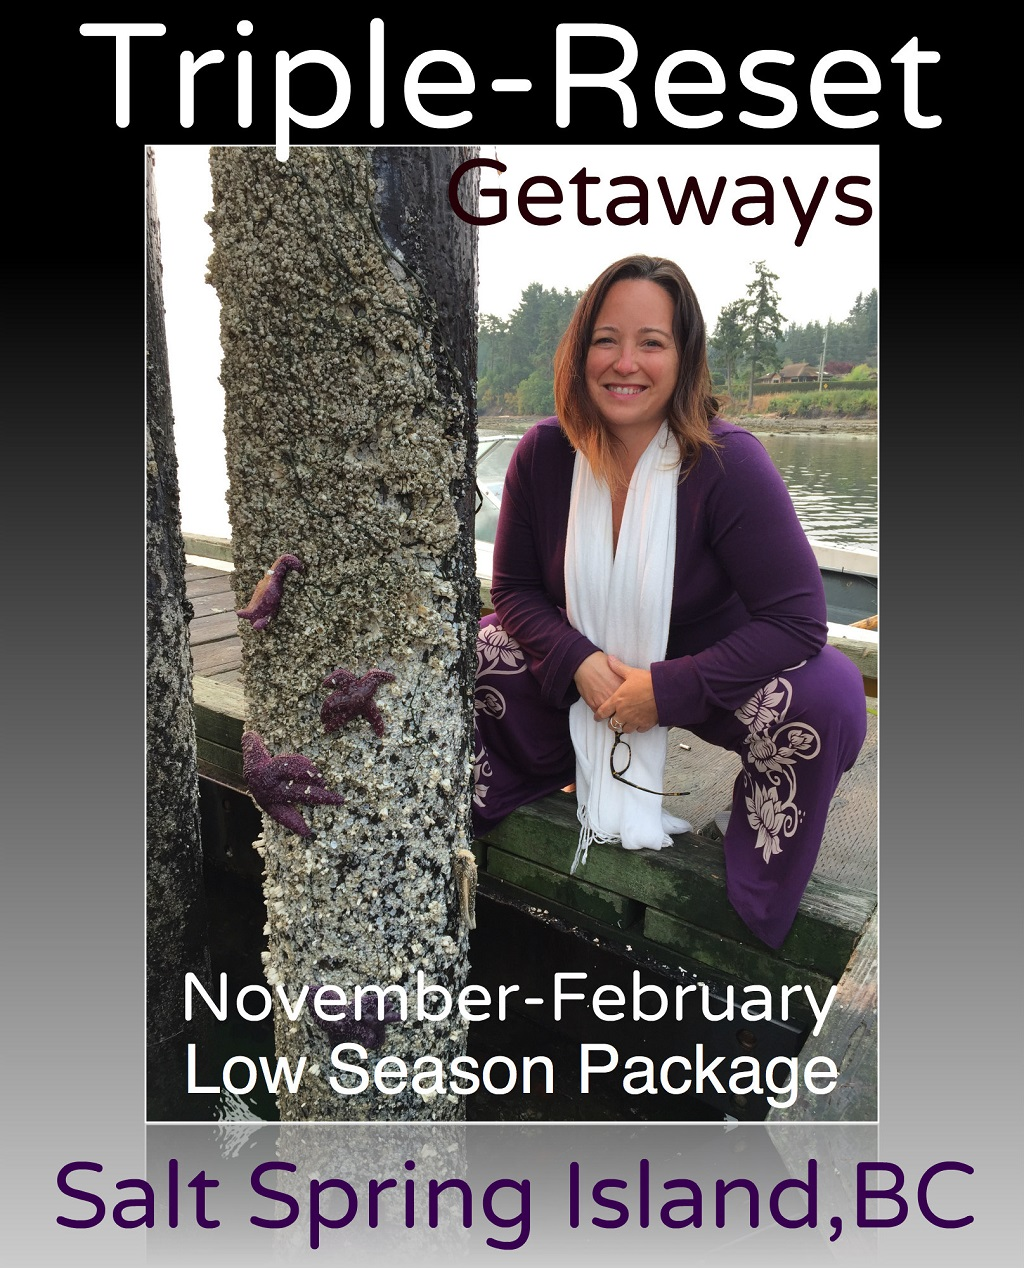 Triple-Love R&R Getaways on Salt Spring Island, B.C.